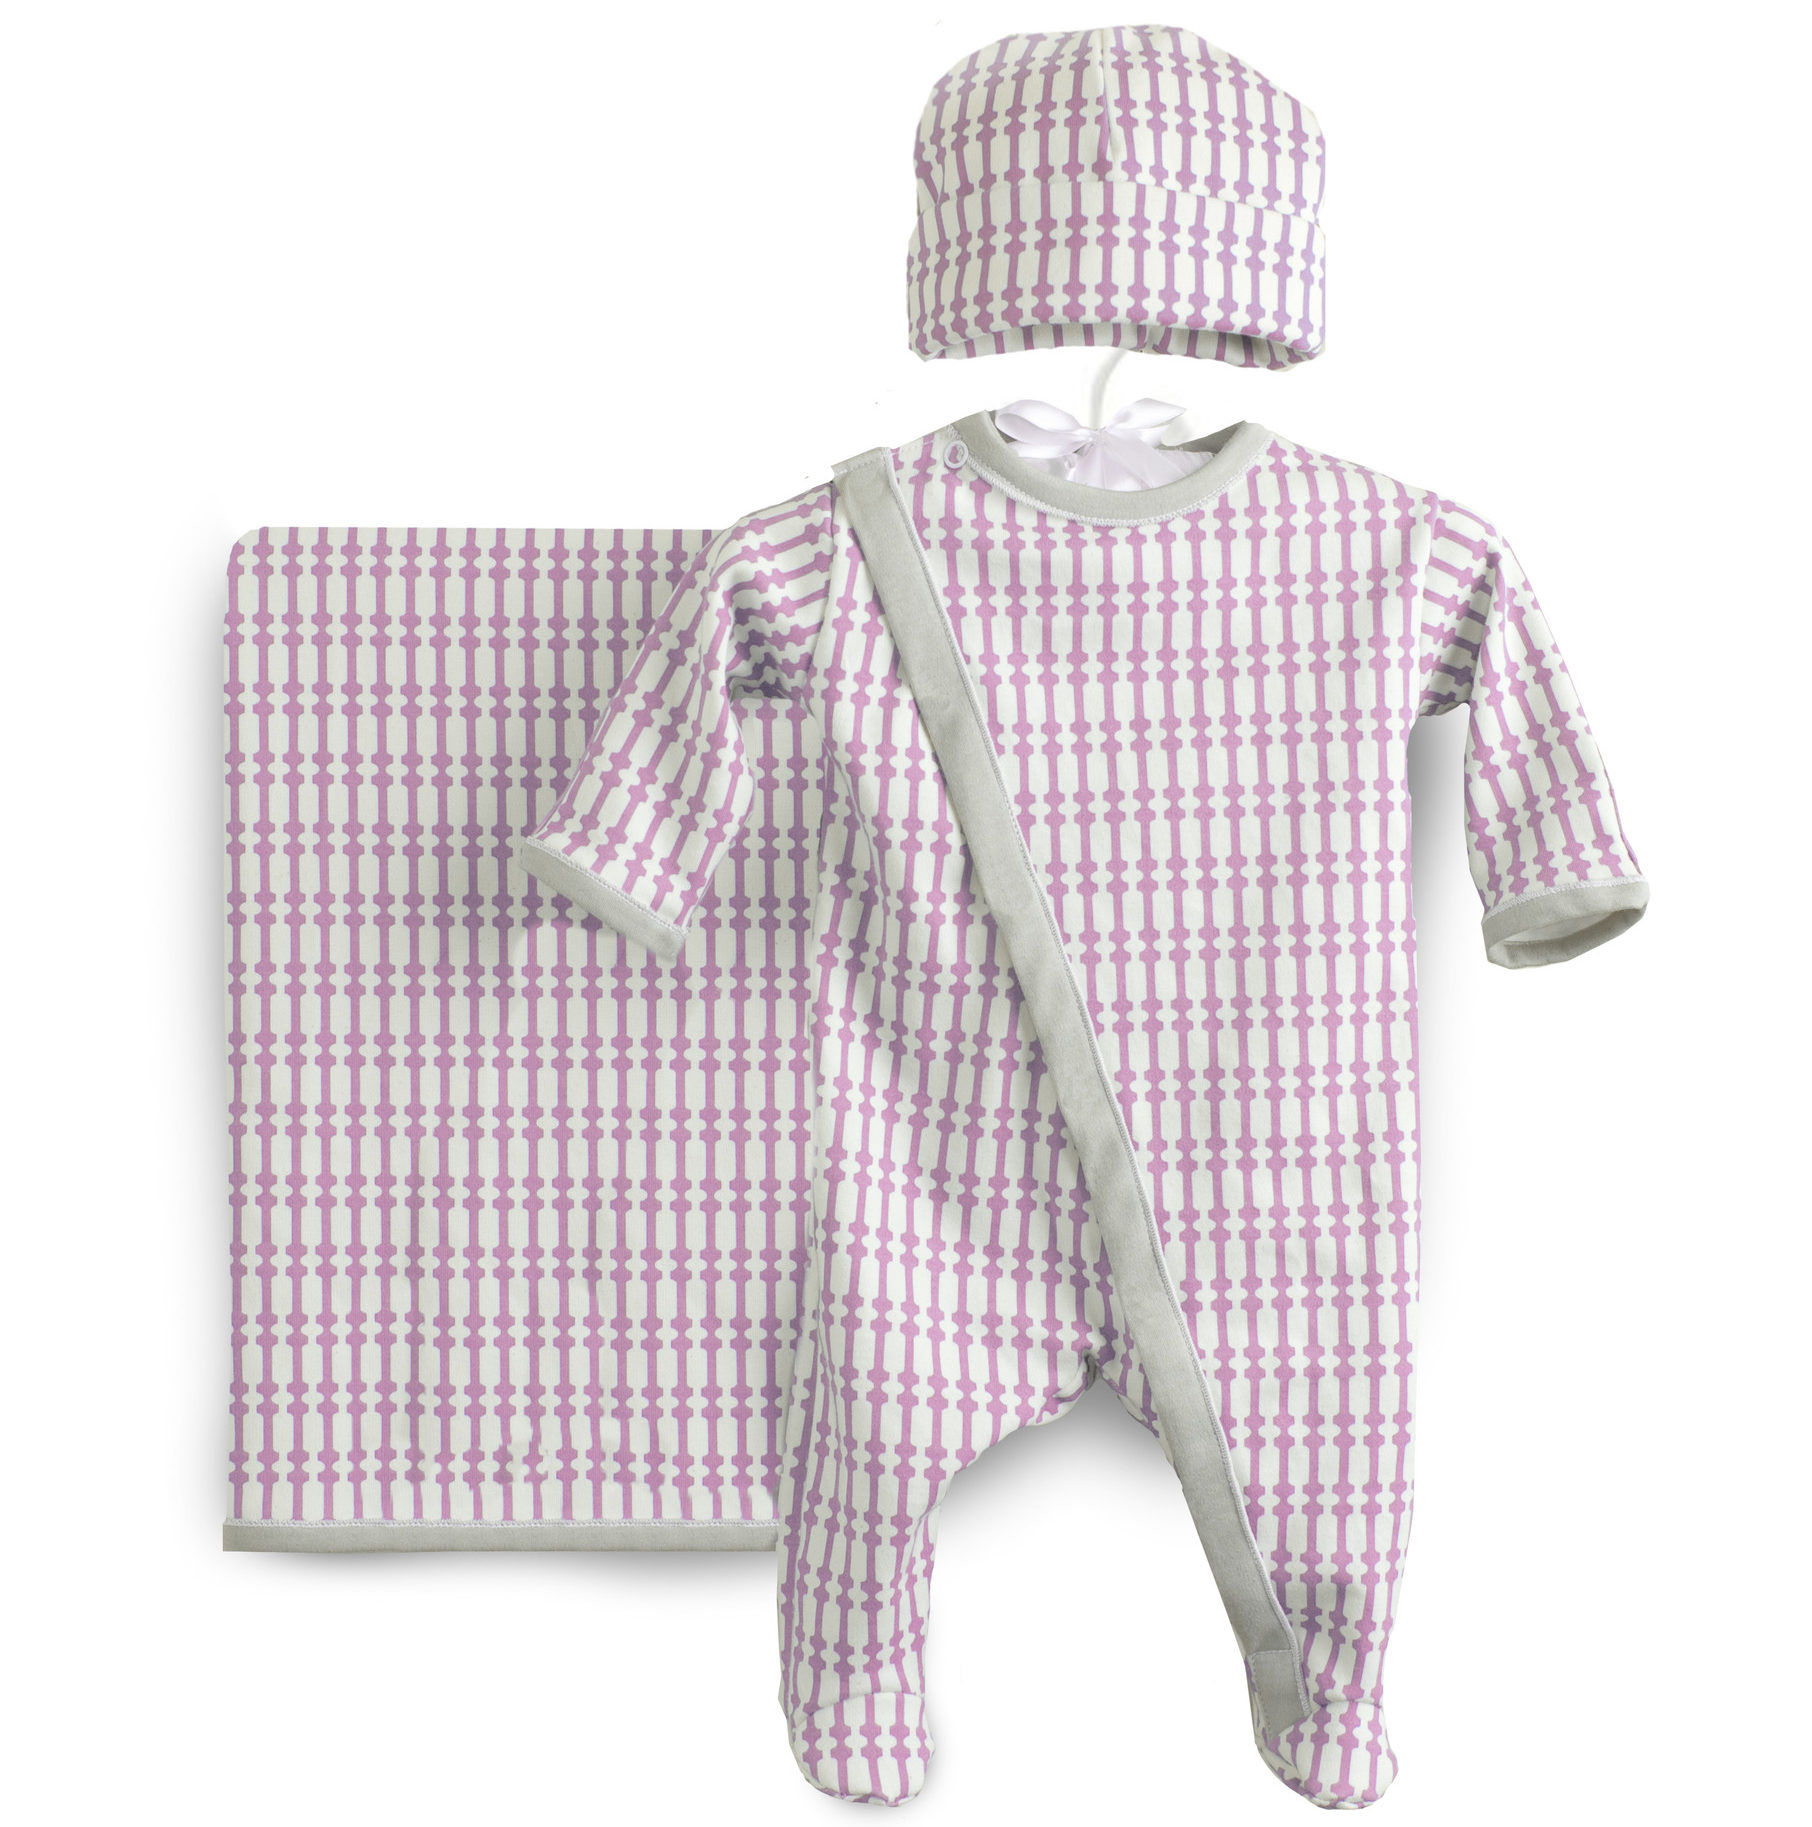 Oilo 3-Piece Baby Set - The Project Nursery Shop